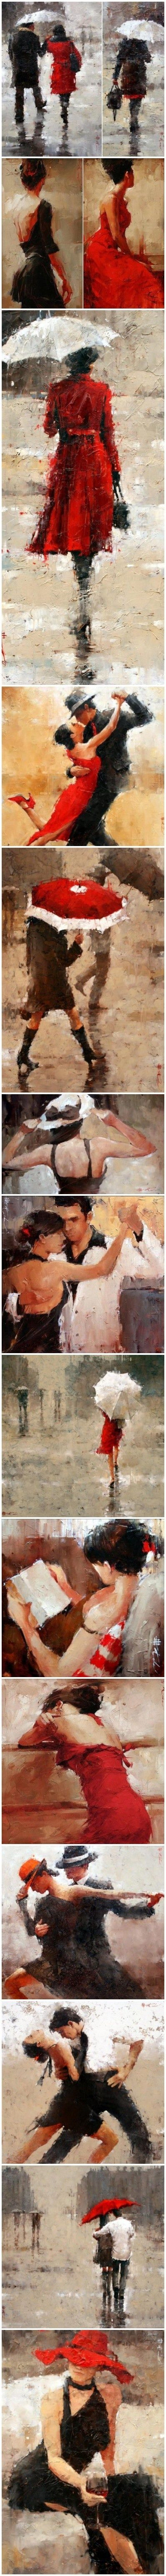 Life and Love.A great set of pieces by an unknown artist!